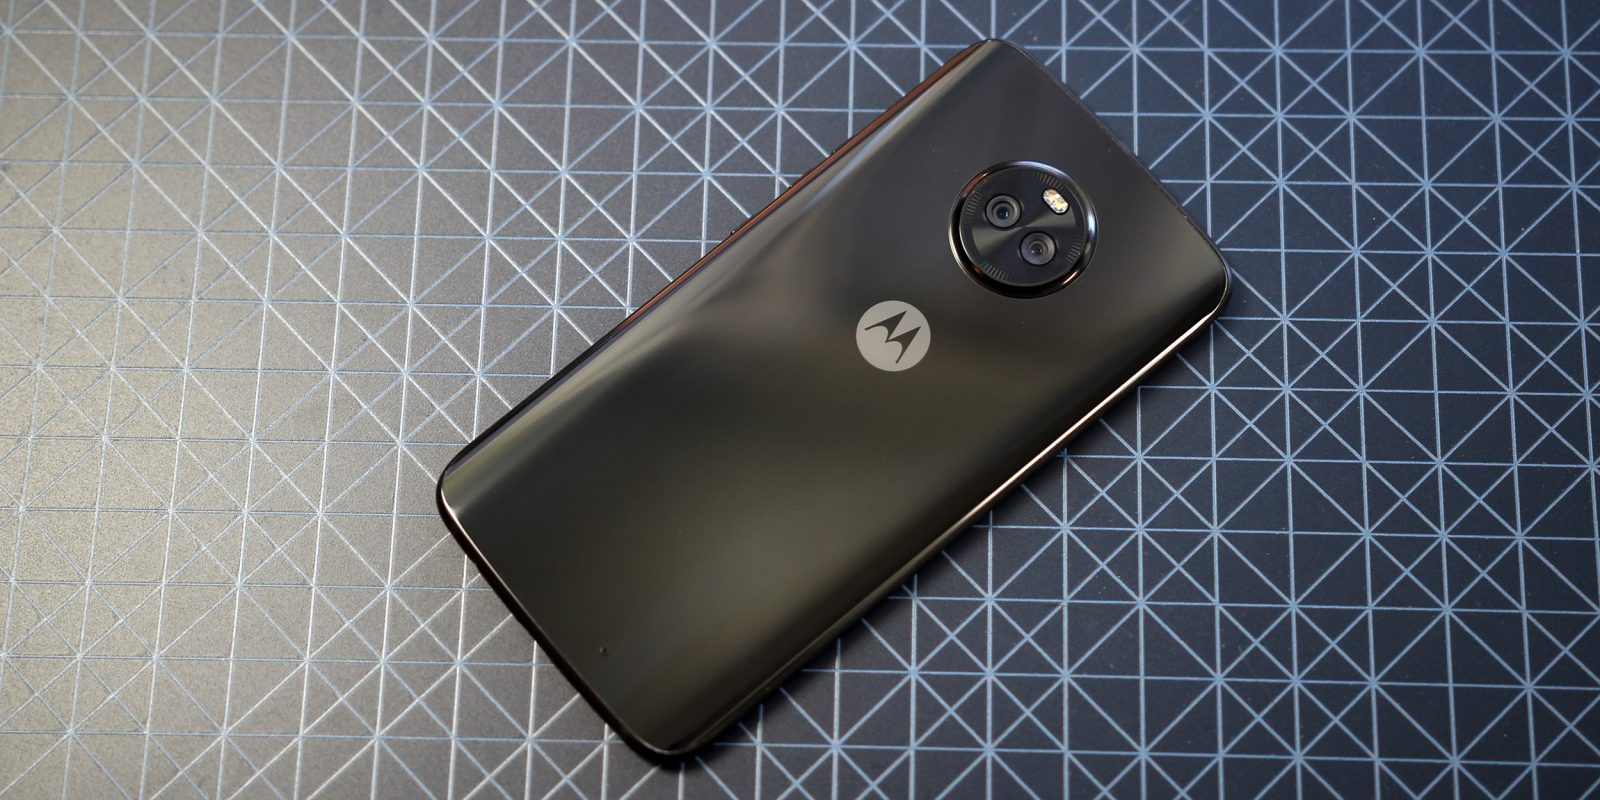 Android 8 1 Oreo now rolling out to Moto X4 unlocked and